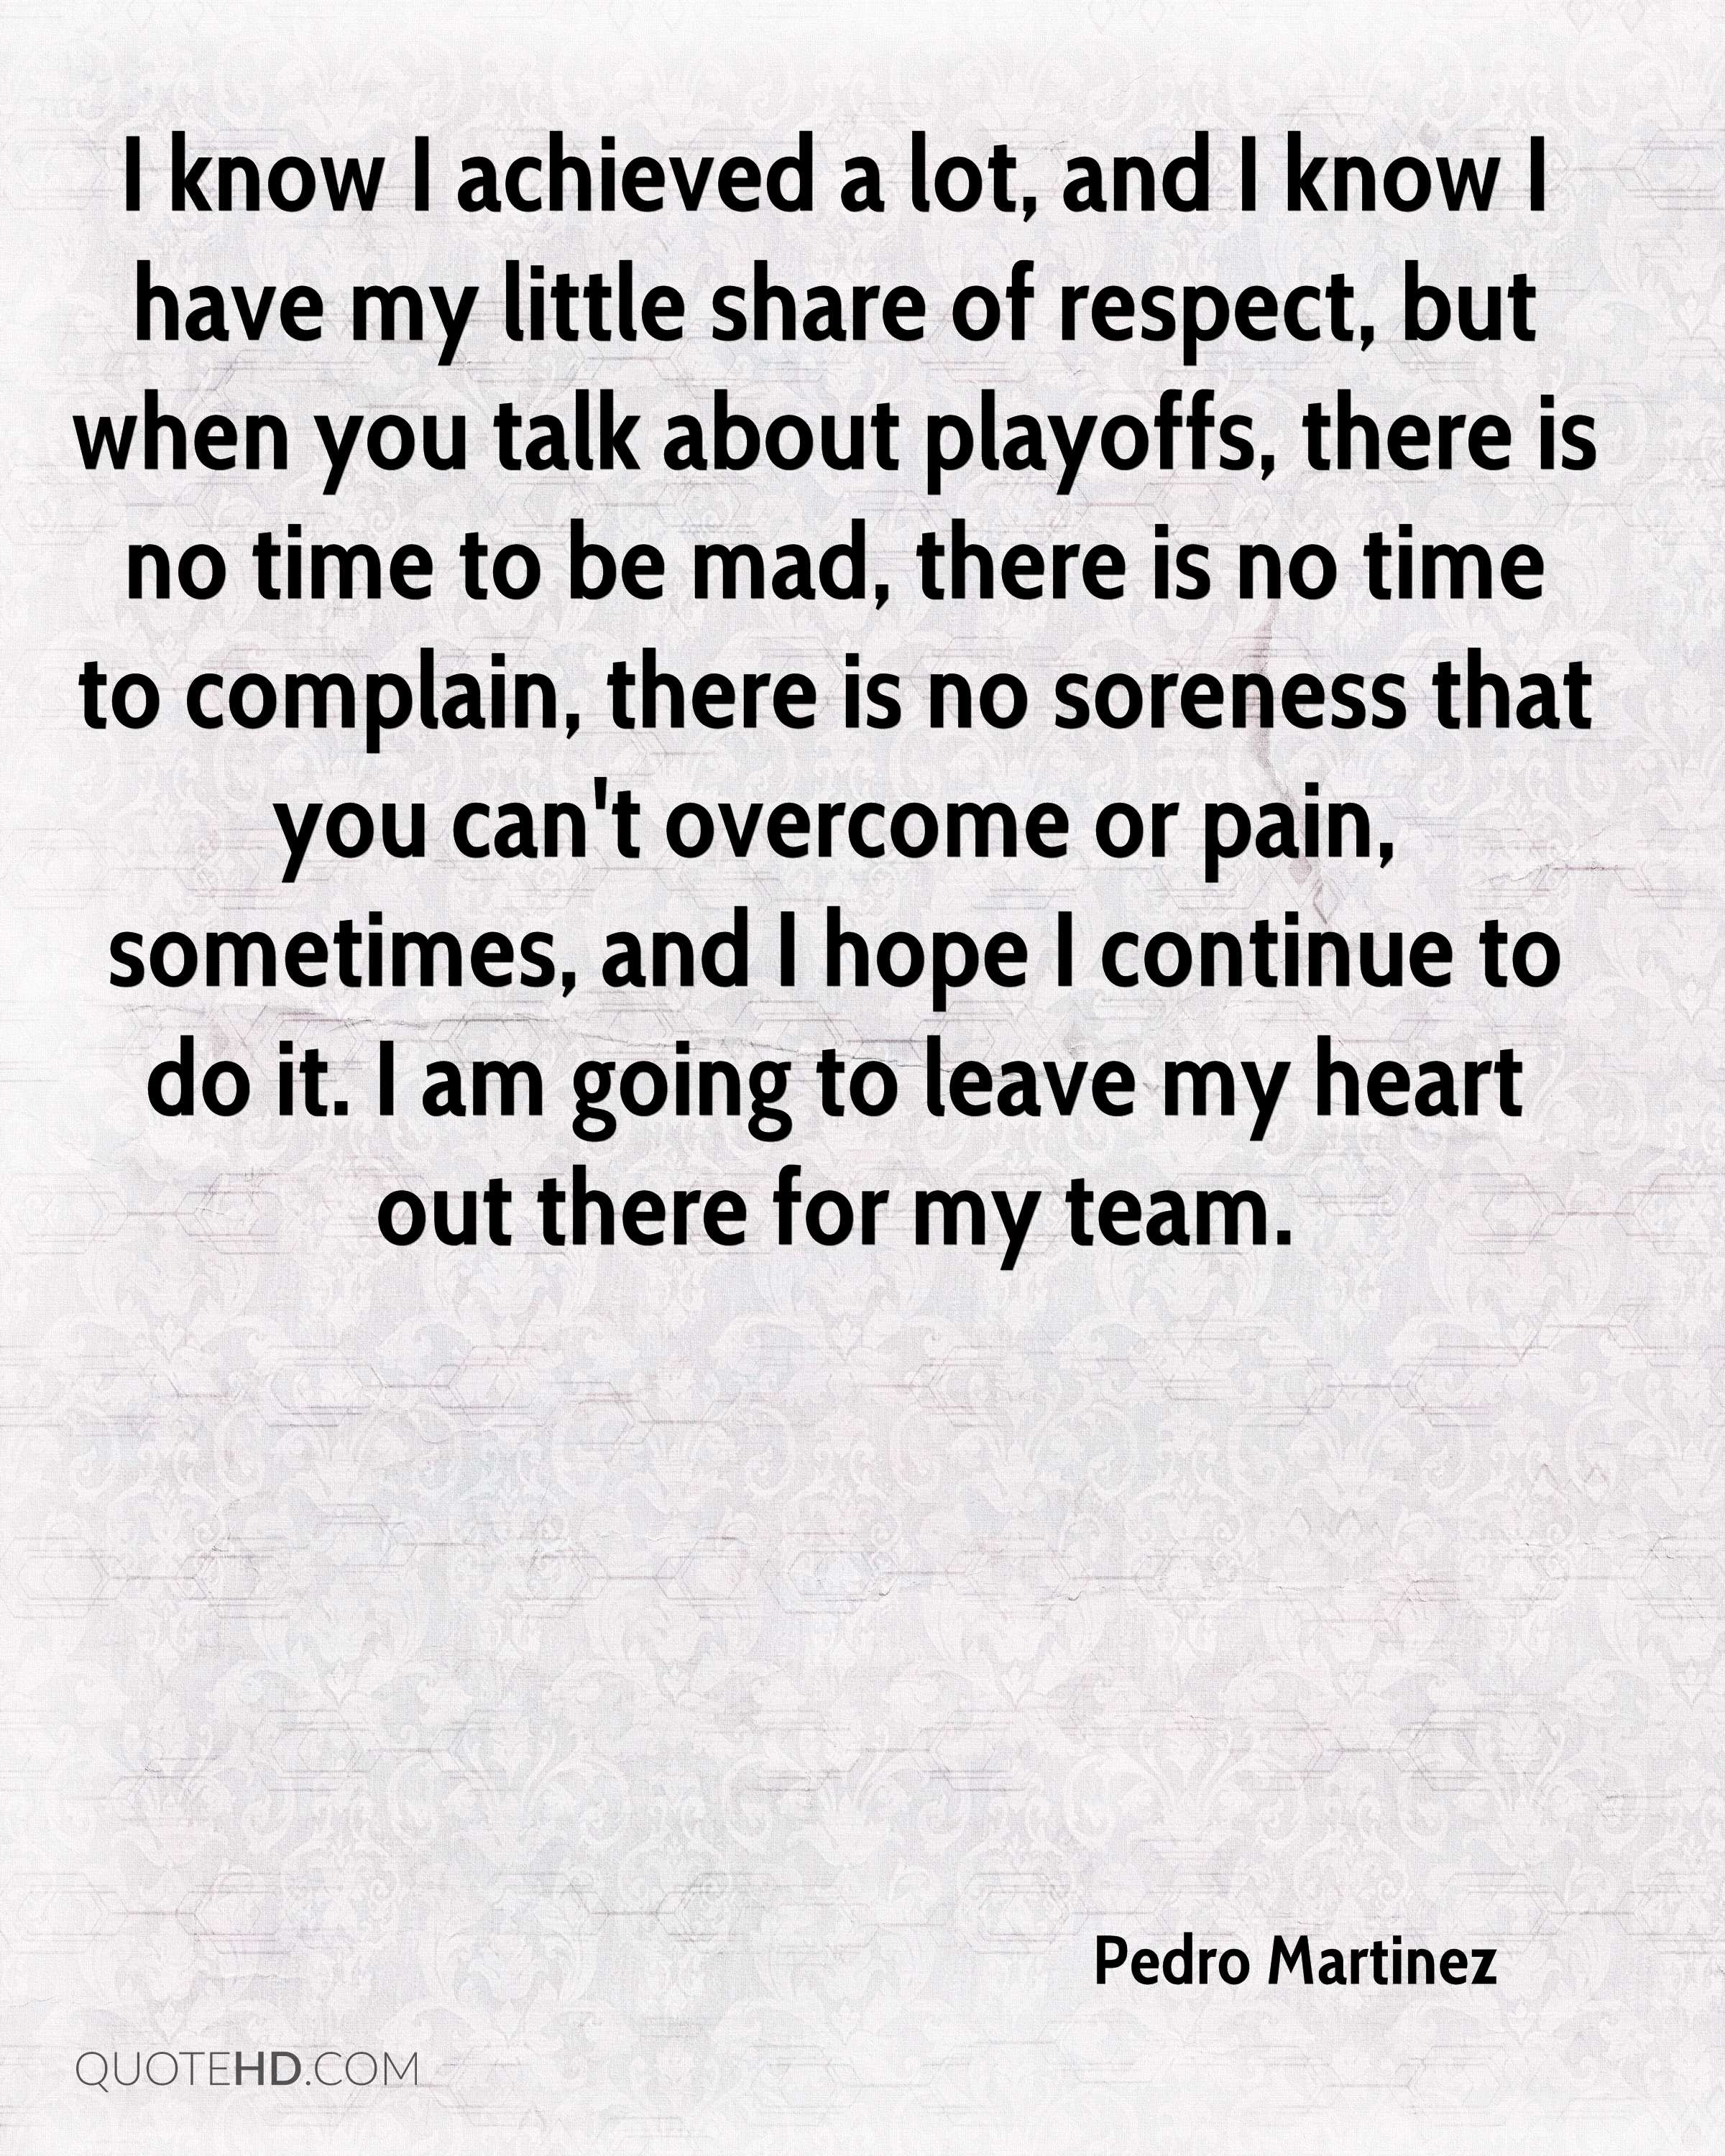 I know I achieved a lot, and I know I have my little share of respect, but when you talk about playoffs, there is no time to be mad, there is no time to complain, there is no soreness that you can't overcome or pain, sometimes, and I hope I continue to do it. I am going to leave my heart out there for my team.